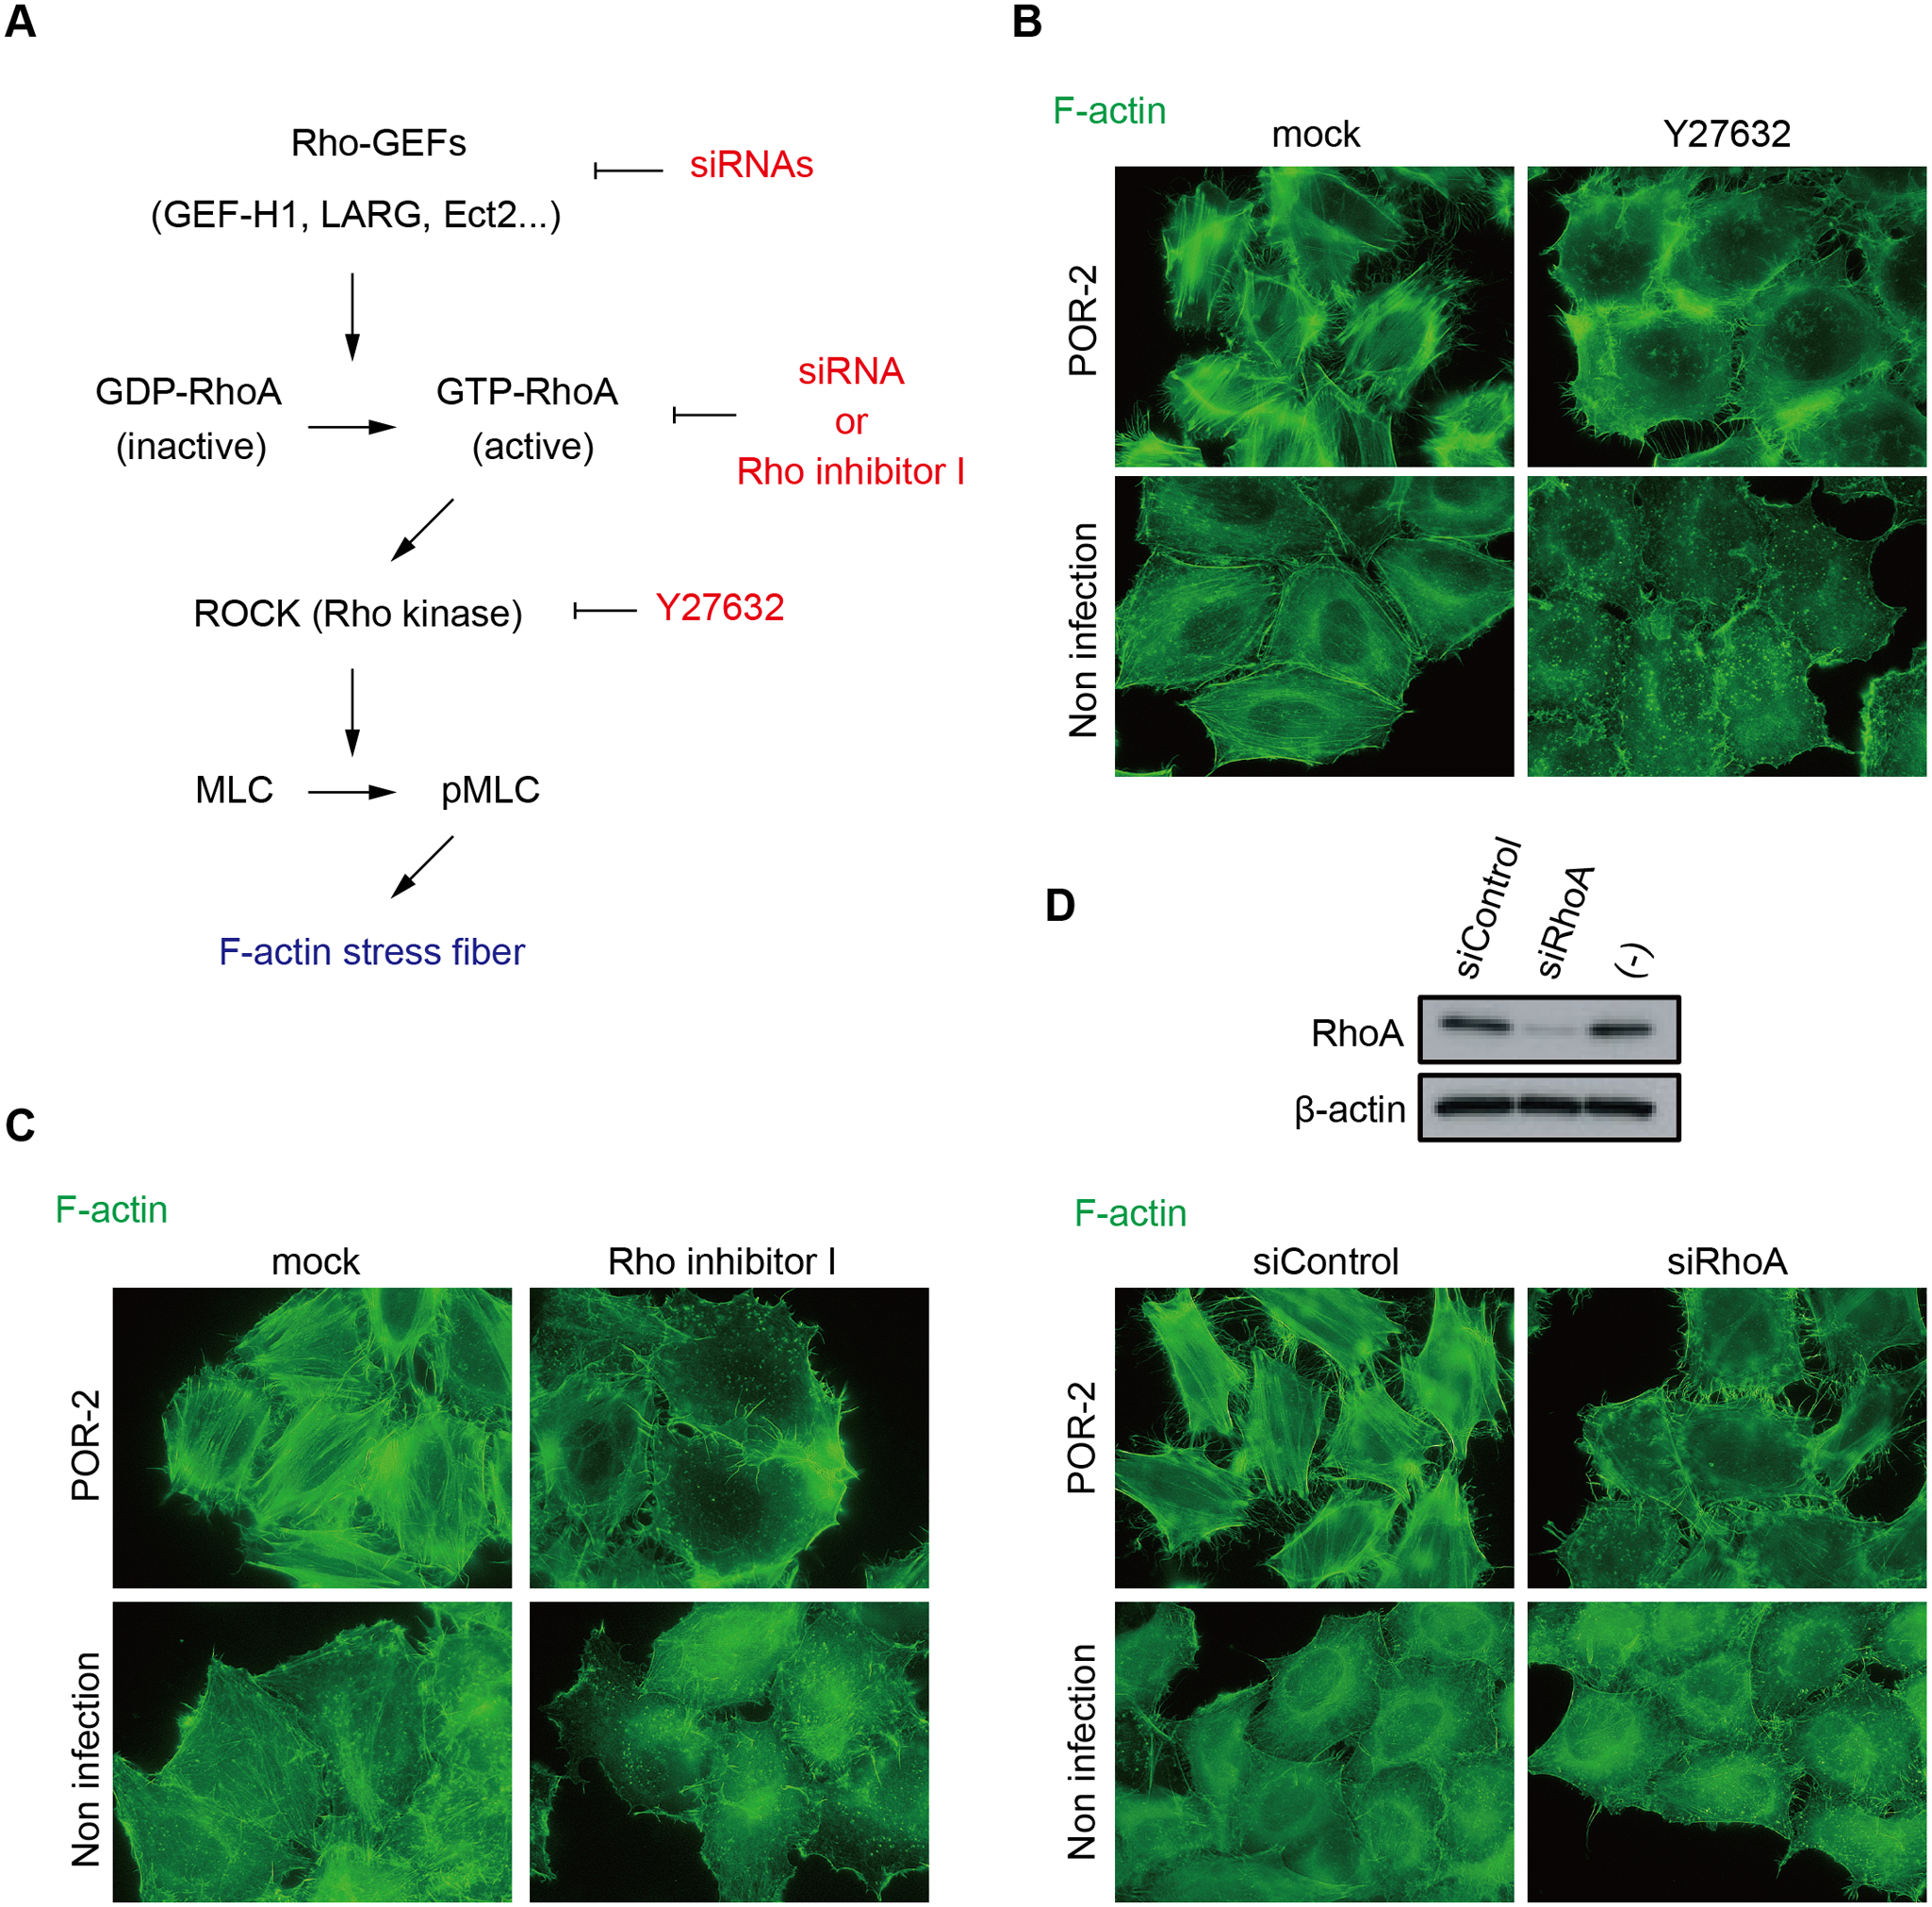 The RhoA-ROCK pathway is essential for T3SS2-dependent stress fiber formation.